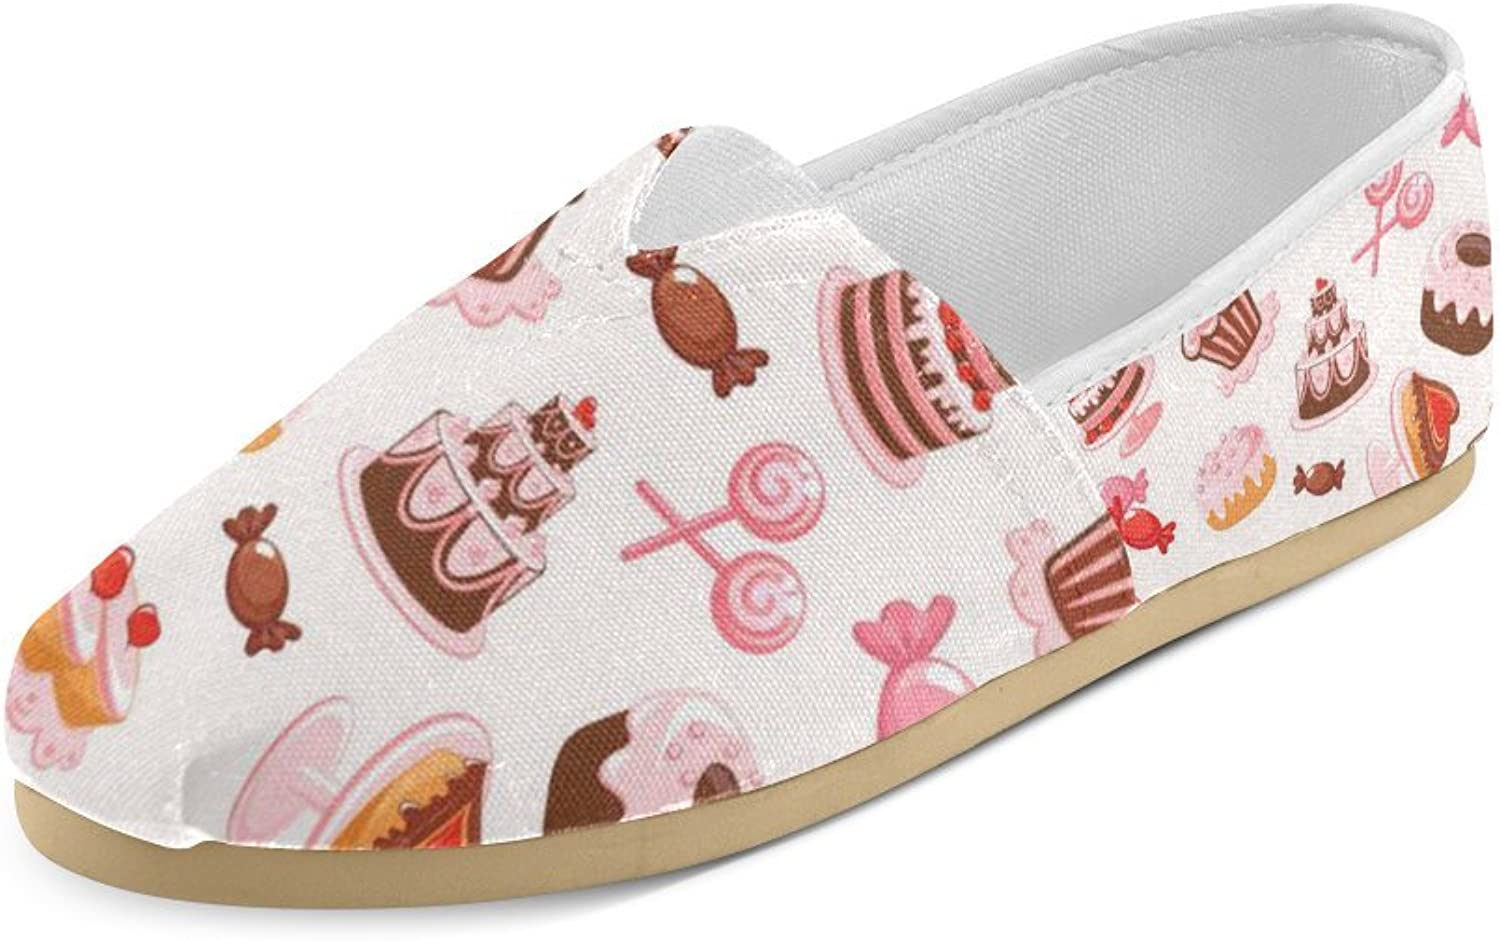 HUANGDAISY Unisex shoes Sweet Cake Candy Donuts Casual Canvas Loafers for Bia Kids Girl Or Men